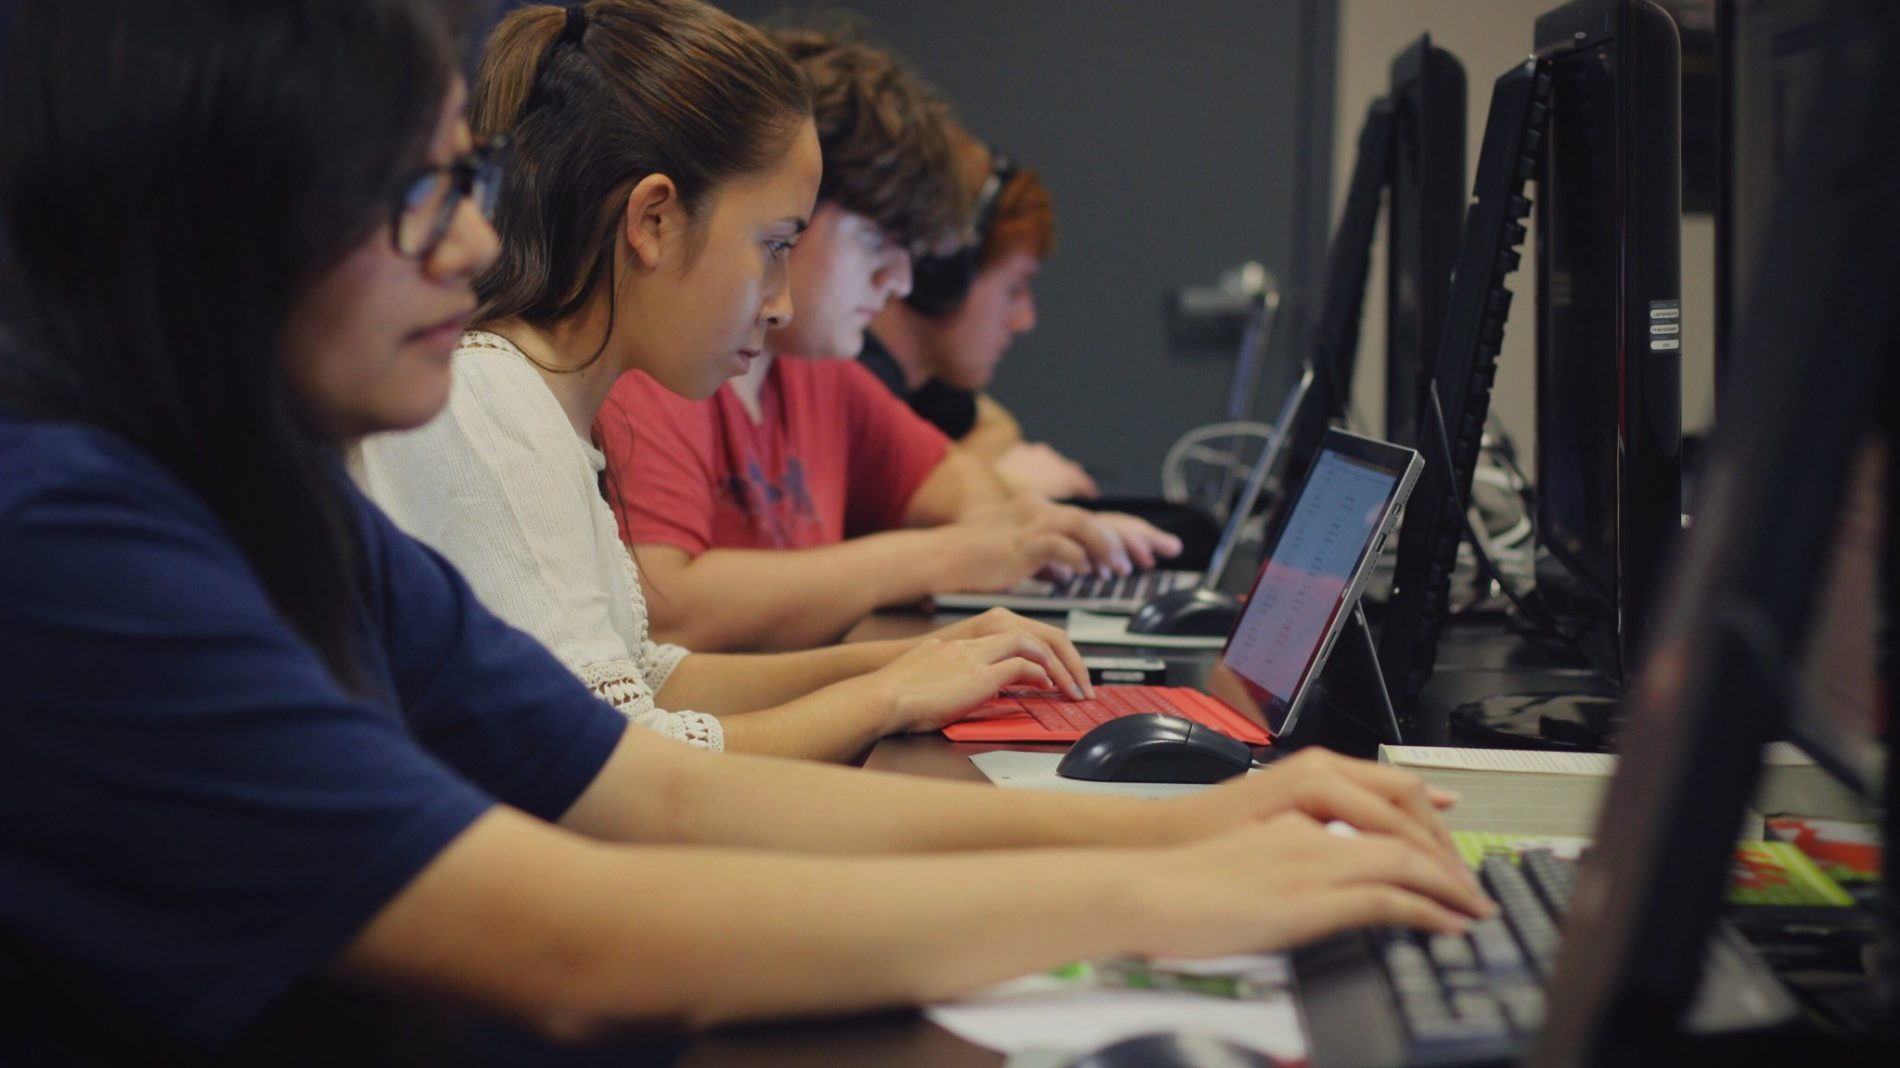 School students studying together in a computer lab